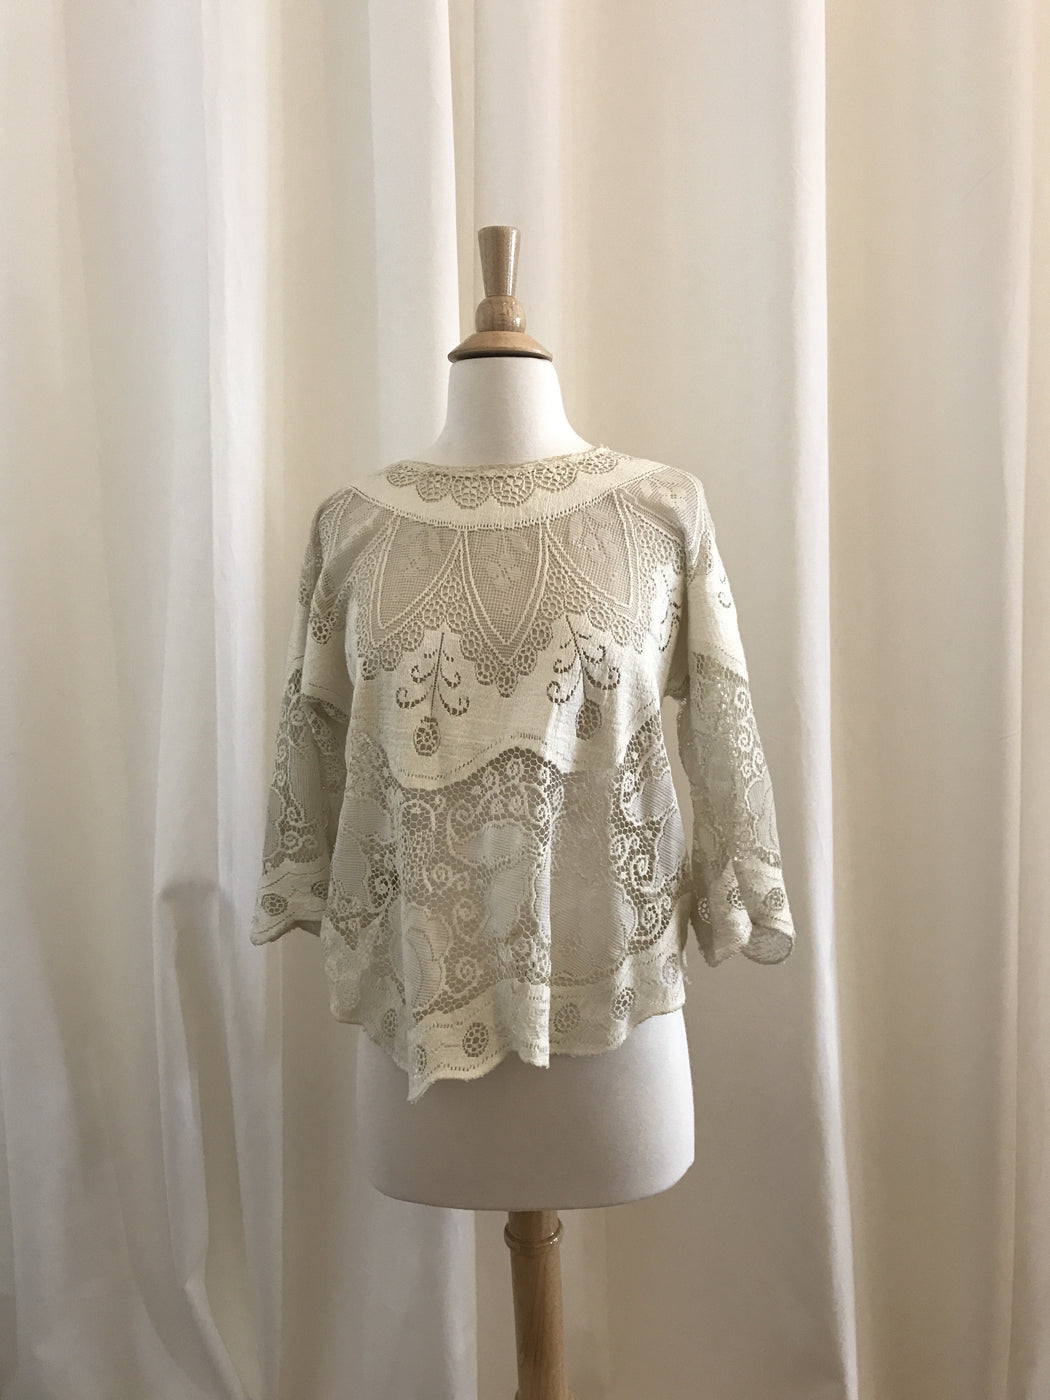 """Tuck Everlasting"" Lace Top - Estimated Size S, Gingerly Witty - Gingerly Witty"